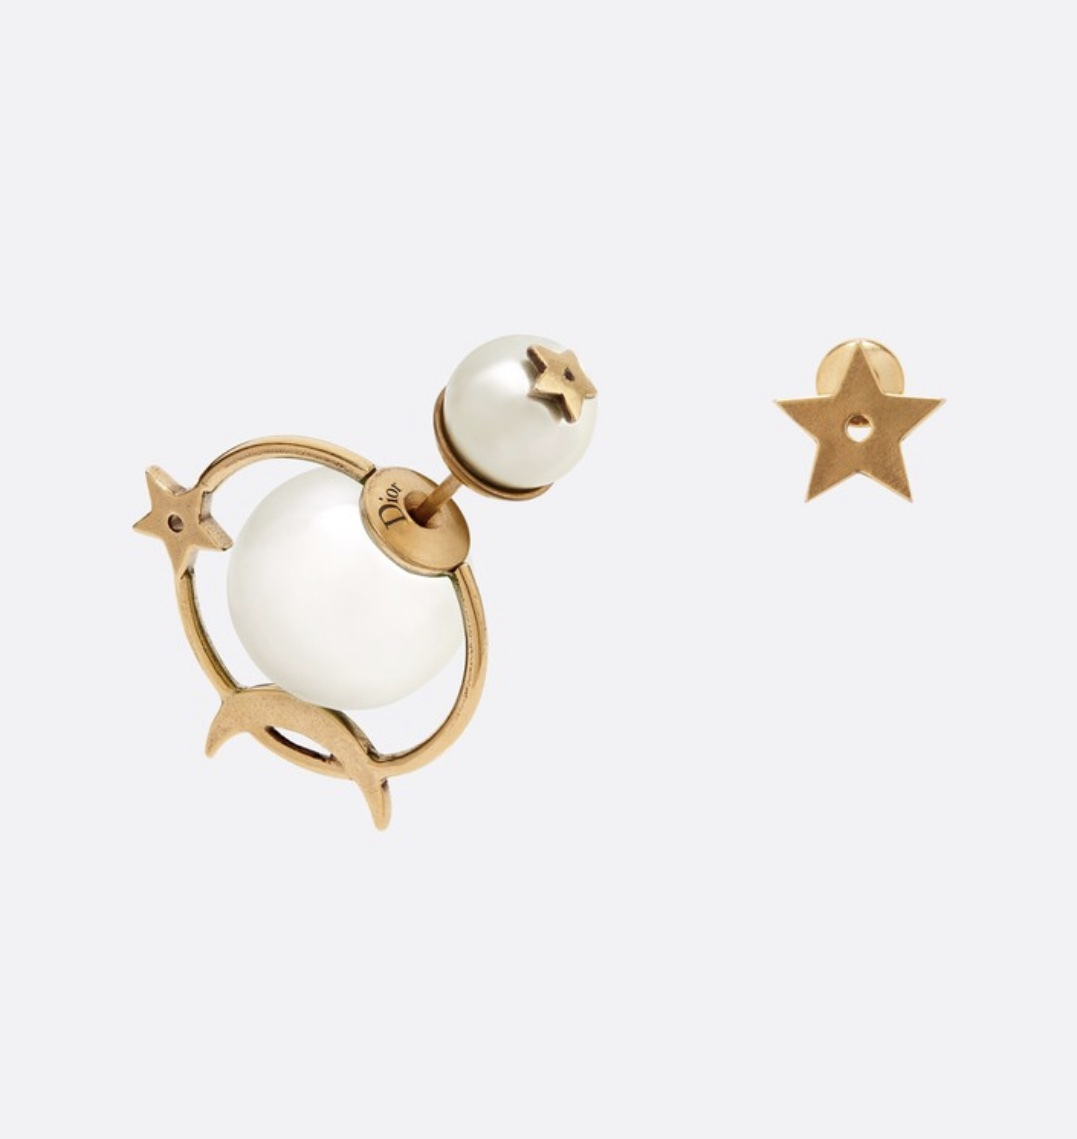 AUTH Christian Dior 2019 TRIBLES EARRINGS STAR PEARL GOLD